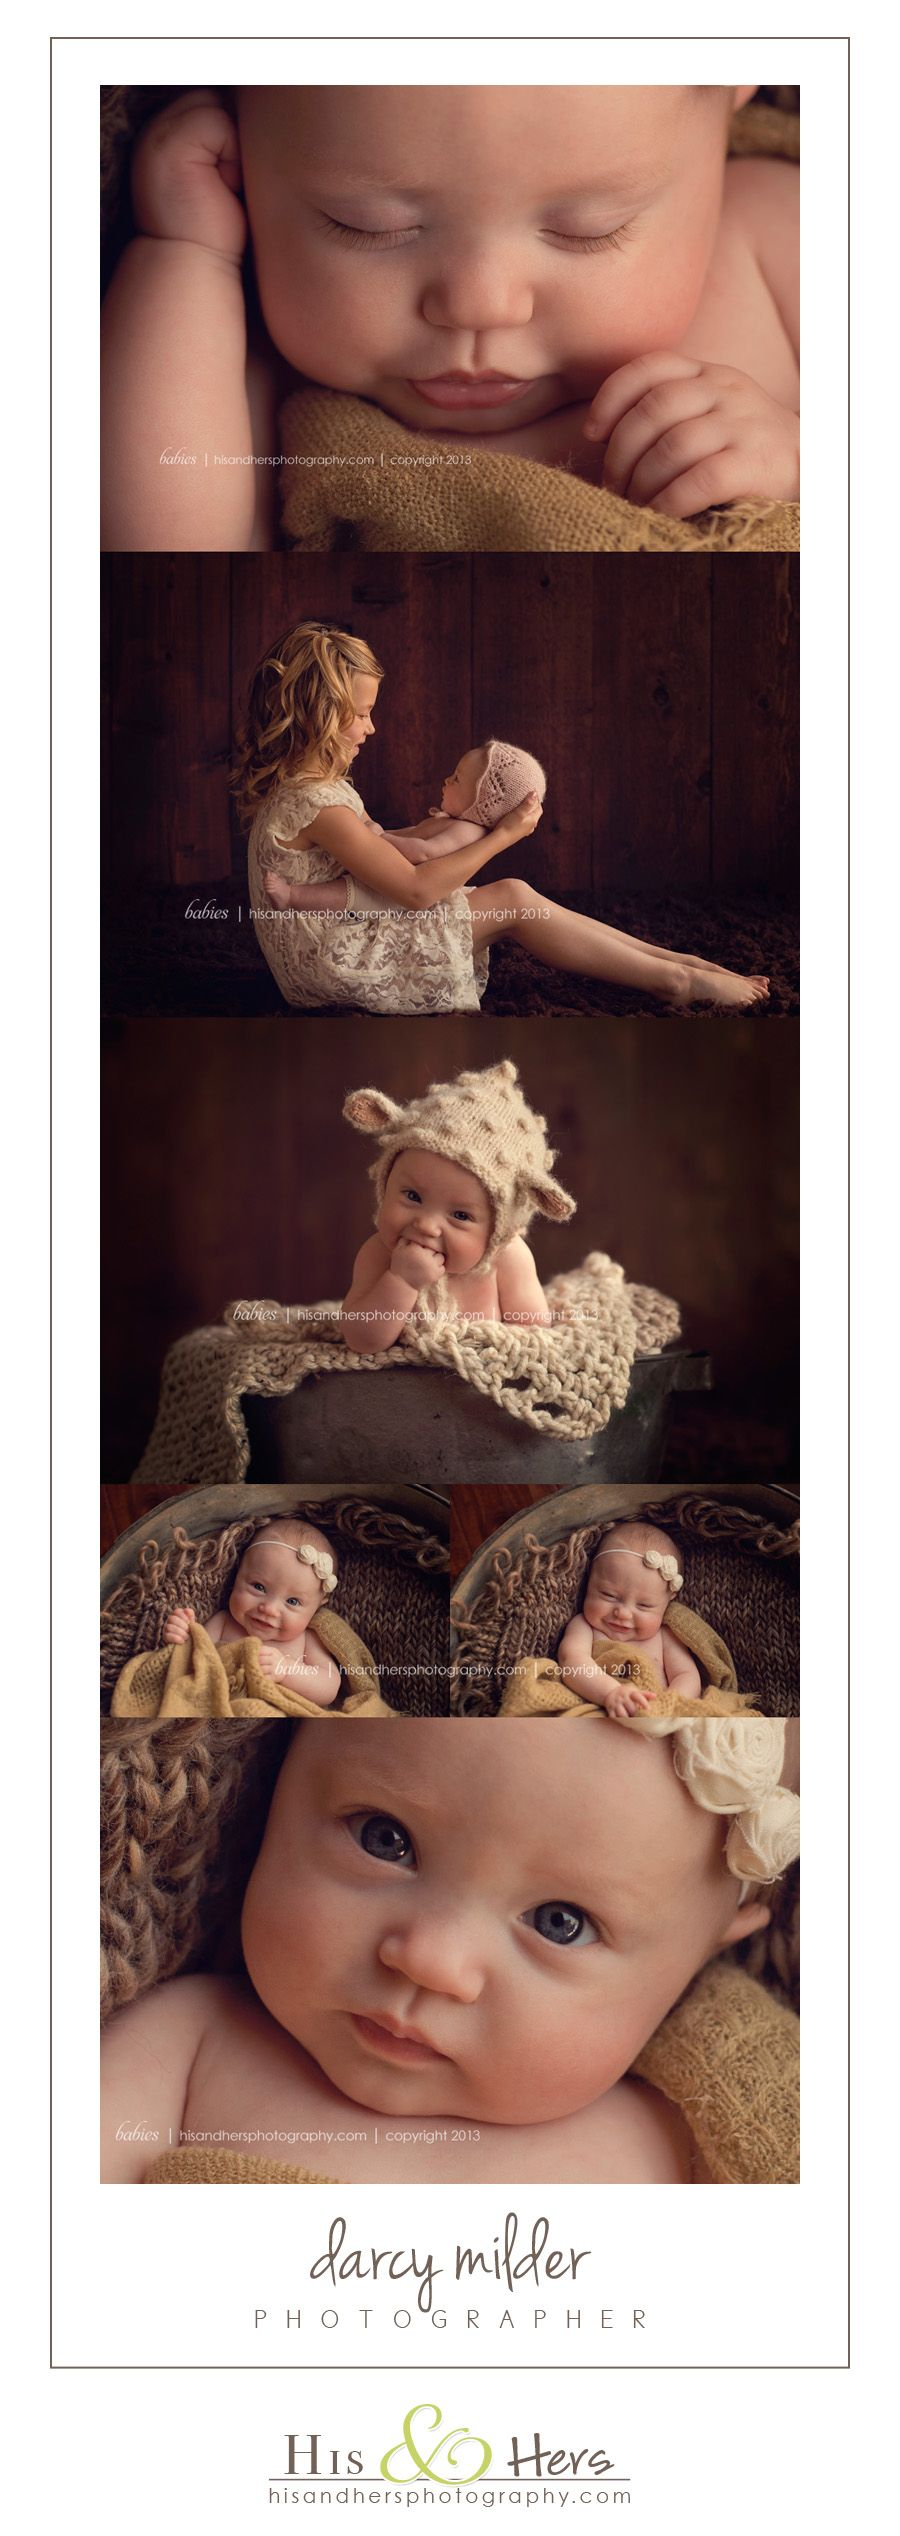 Baby Photographer | Finley, 4 months